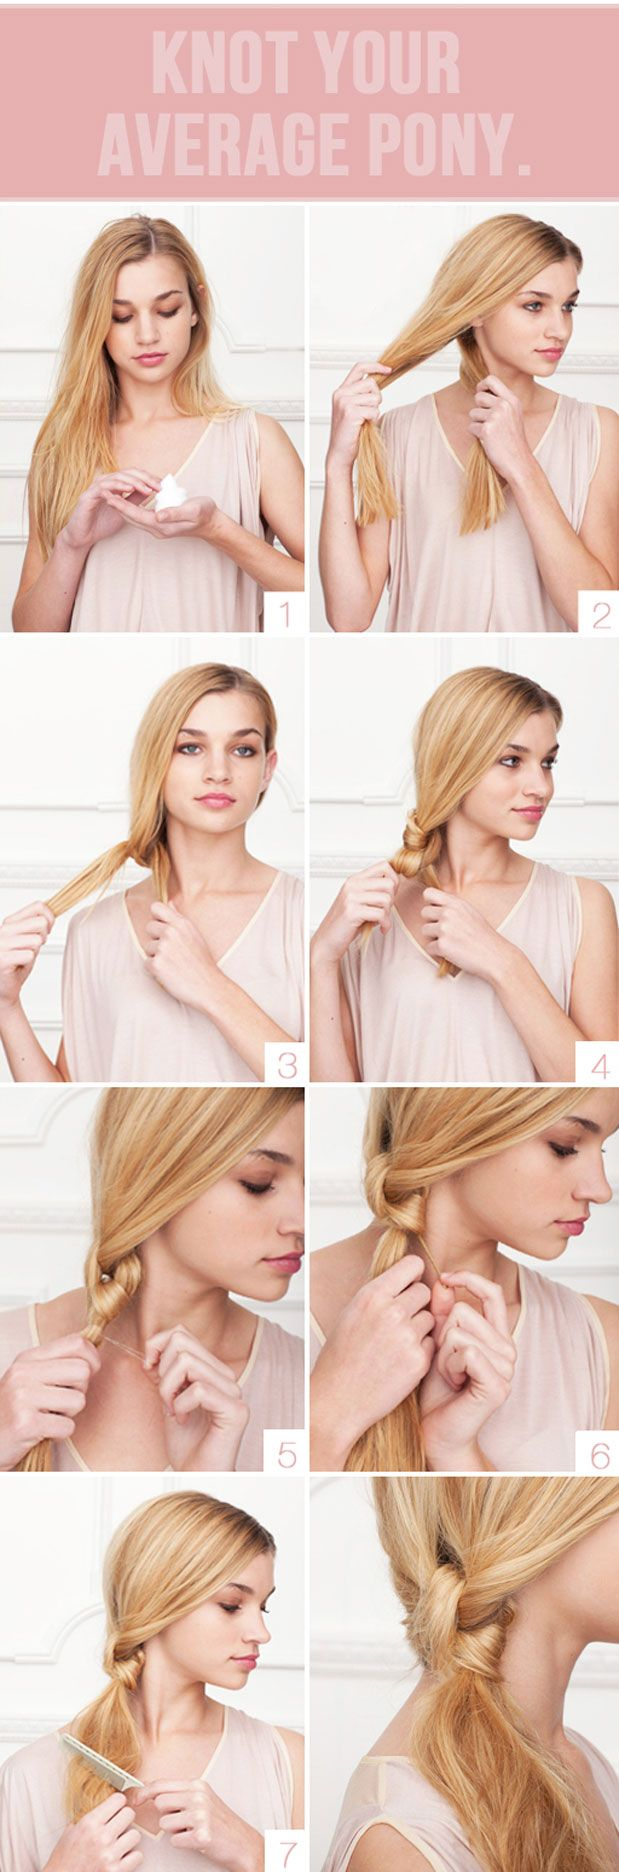 I think I can do this one.: Average Ponies, Hair Tutorials, Long Hair, Hairstyle, Side Ponytail, Hair Style, Hair Knot, Ponies Tail, Knot Ponytail